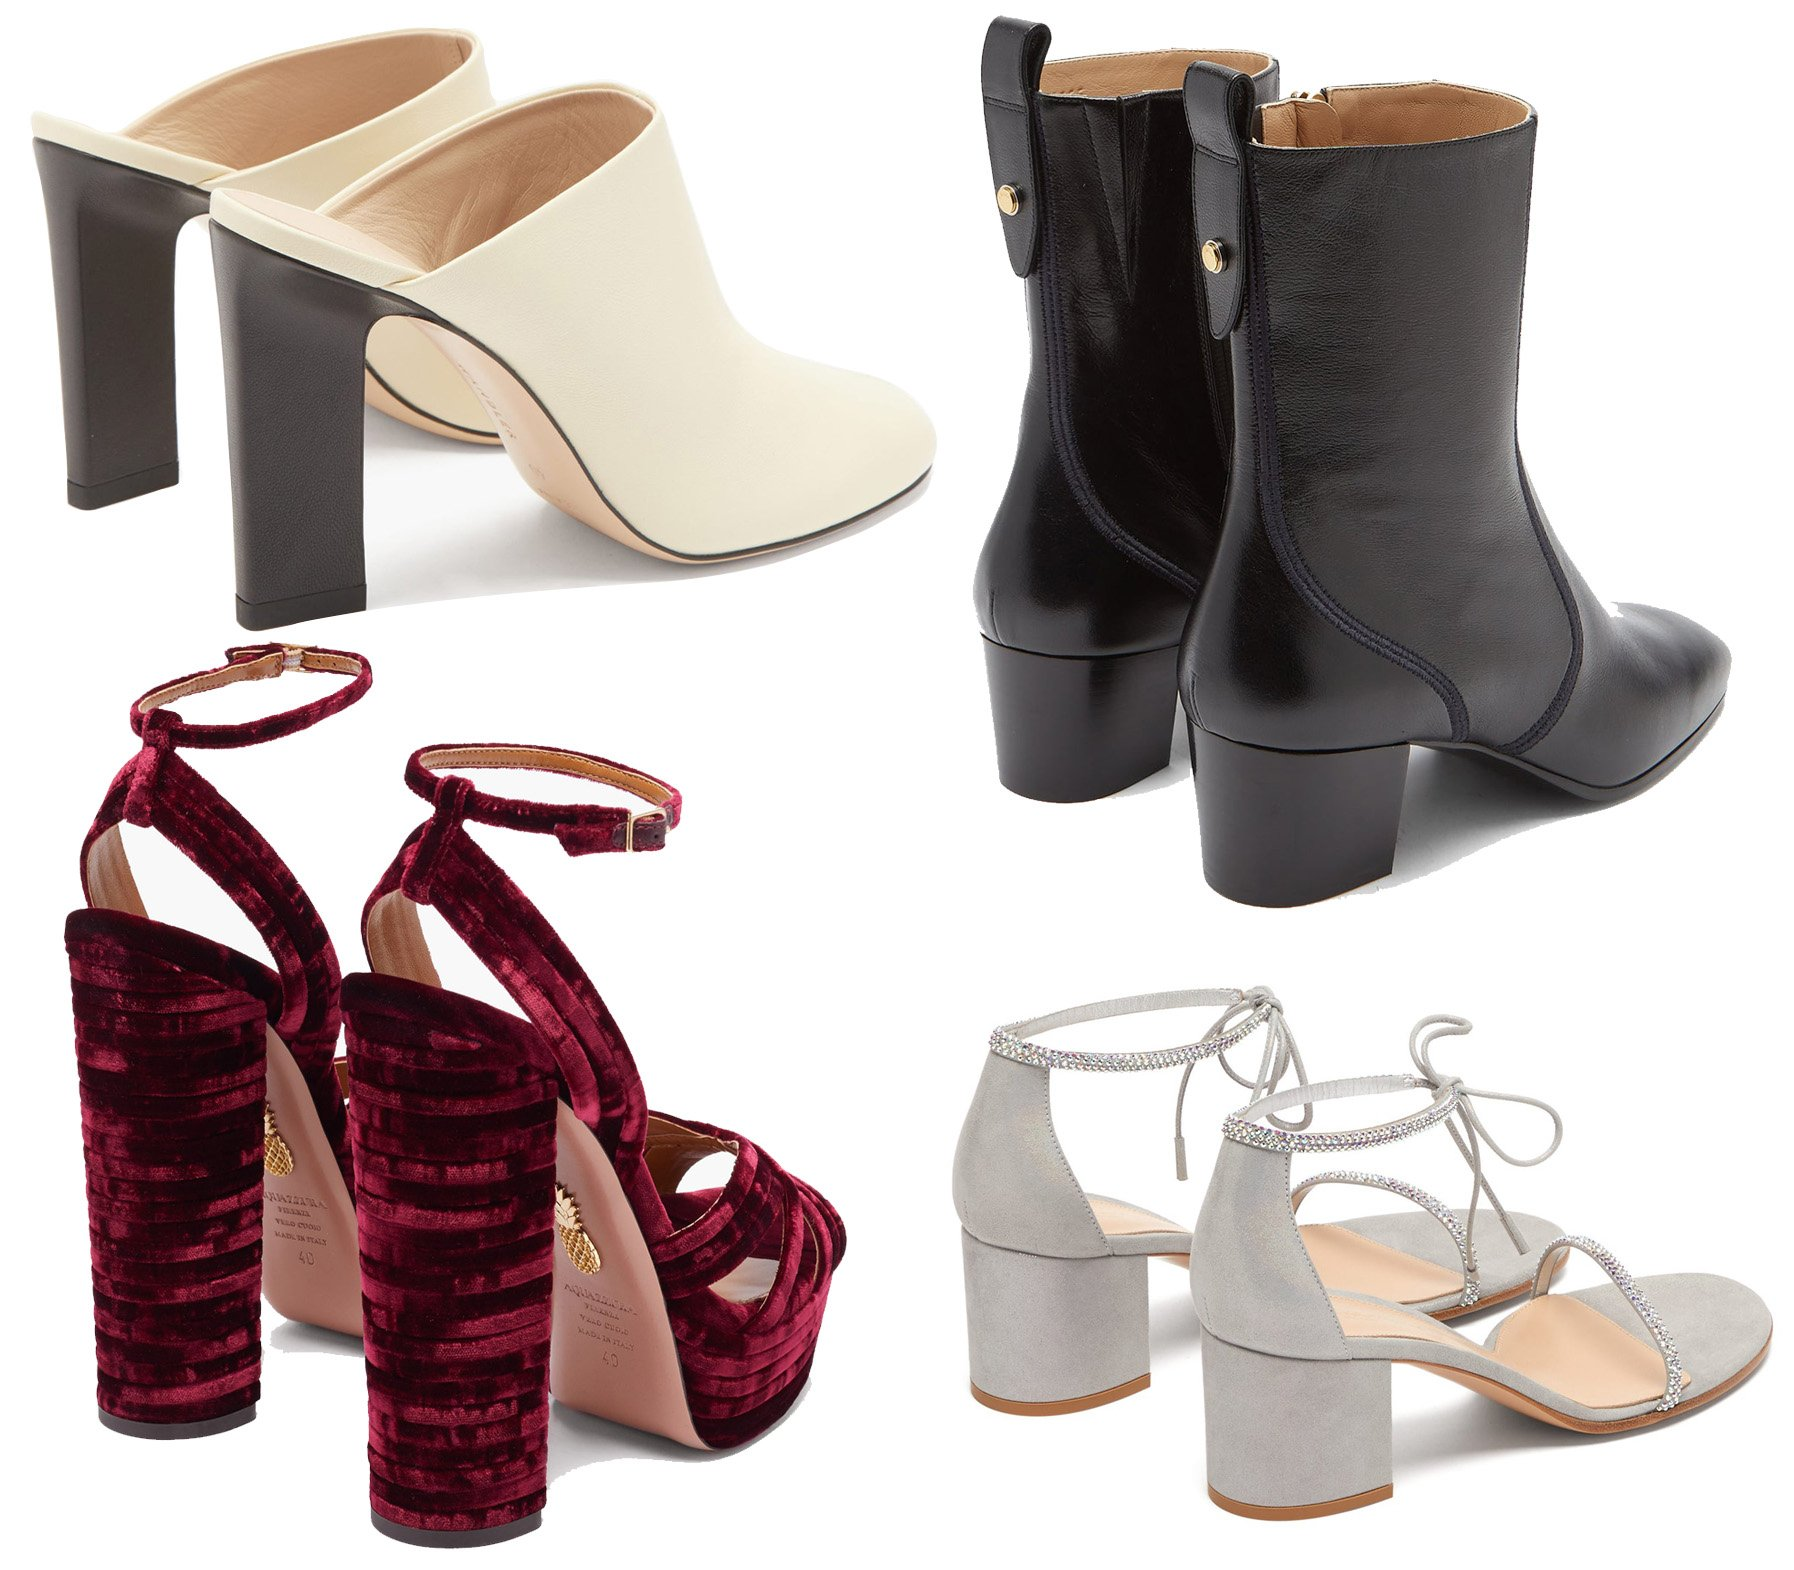 Thick block heels provide comfort, support, and more even distribution of weight throughout the feet